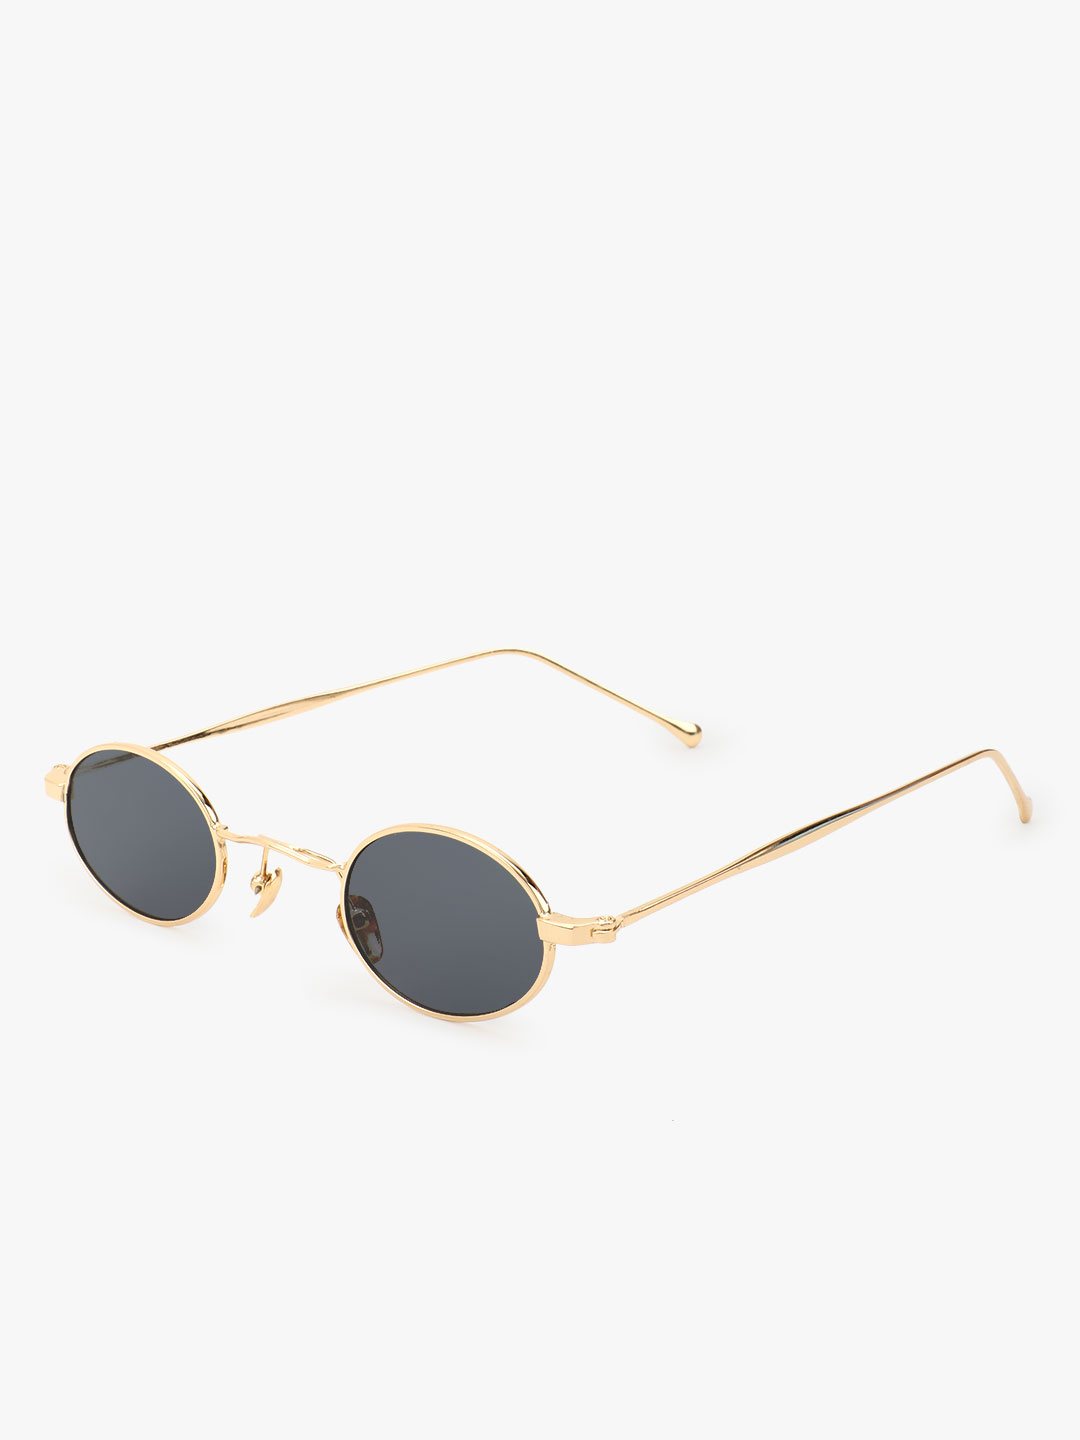 Style Fiesta Black Gold Rimmed Sunglasses 1